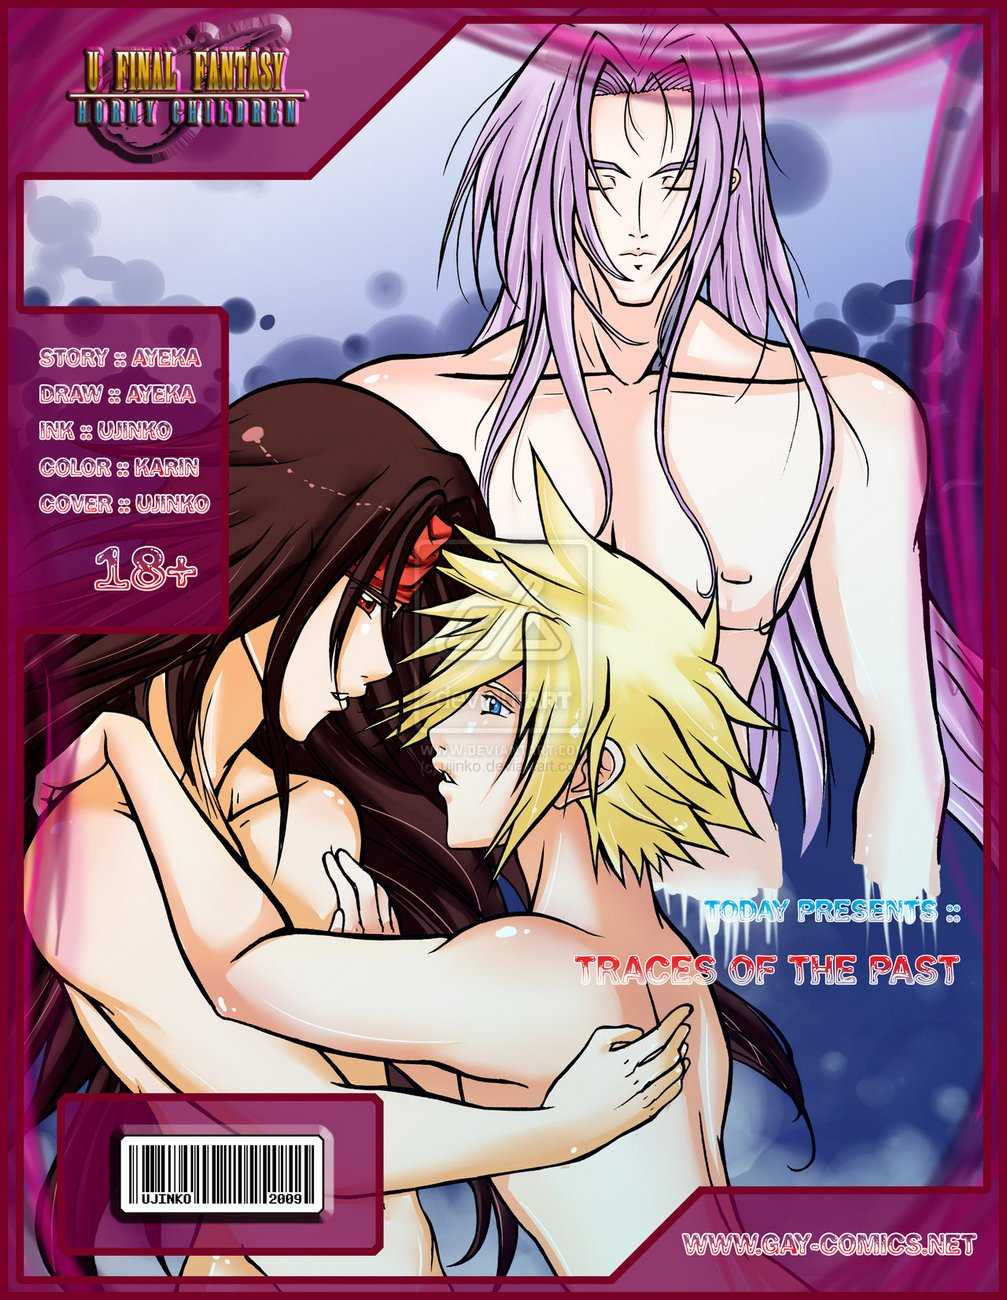 Traces Of The Past- Final Fantasy porn comics 8 muses